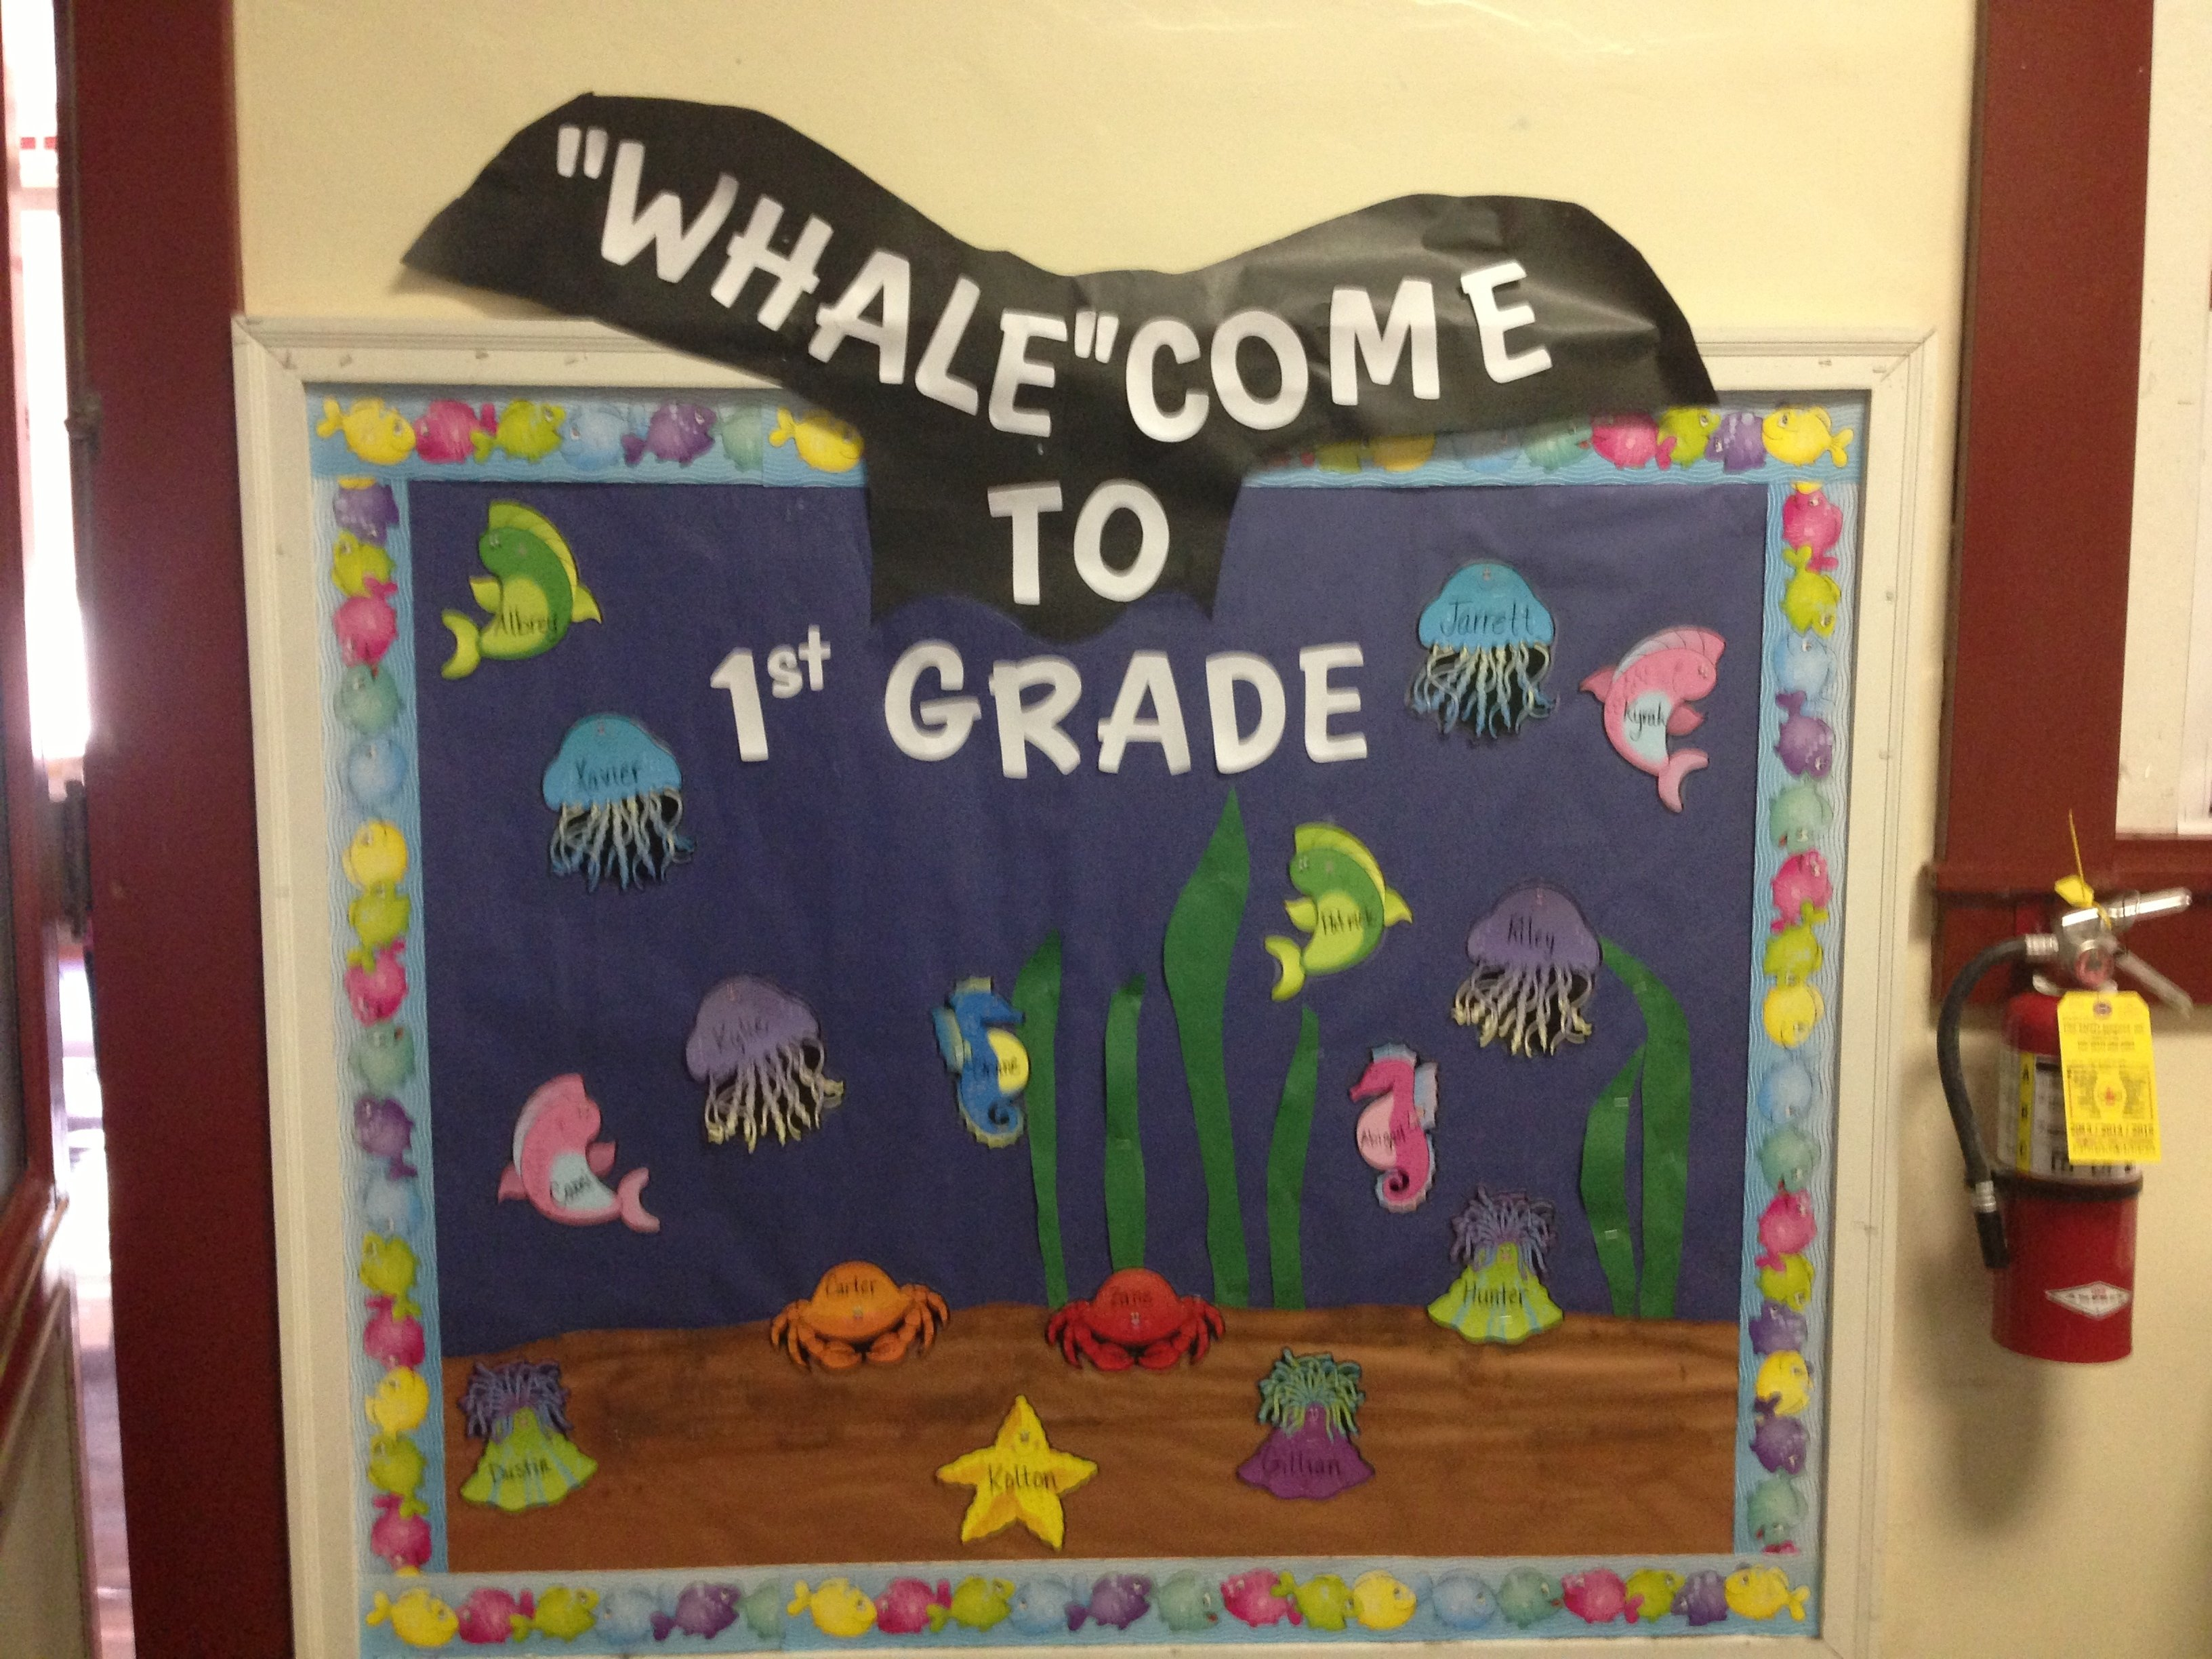 10 Famous Back To School Bulletin Board Ideas Pinterest whalecome to first grade back to school ocean theme beginning 1 2020